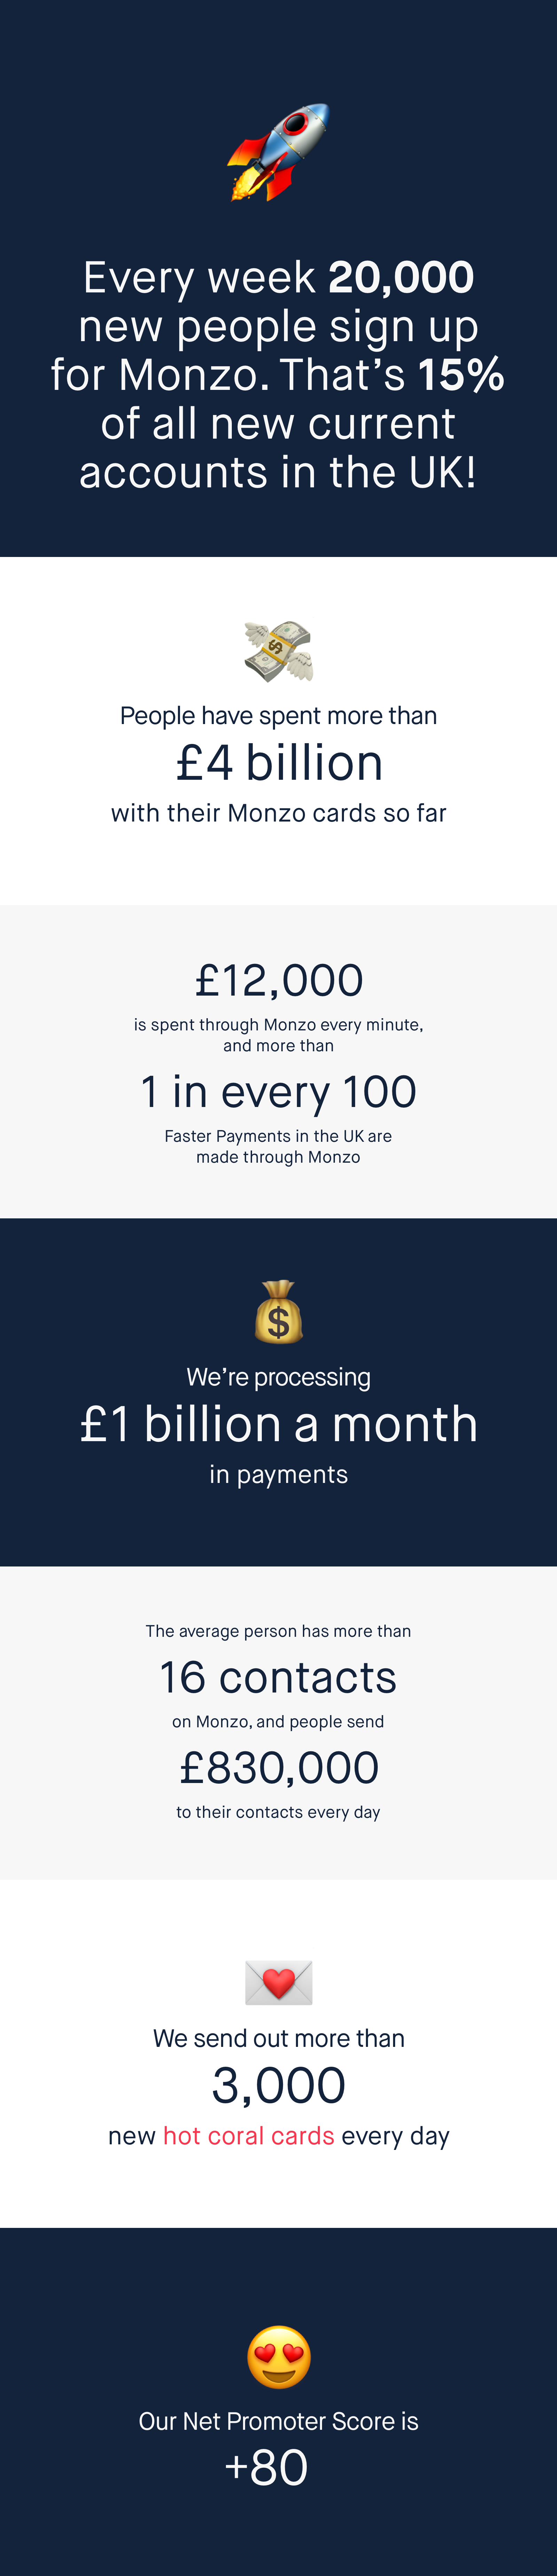 Infographics sharing stats about Monzo